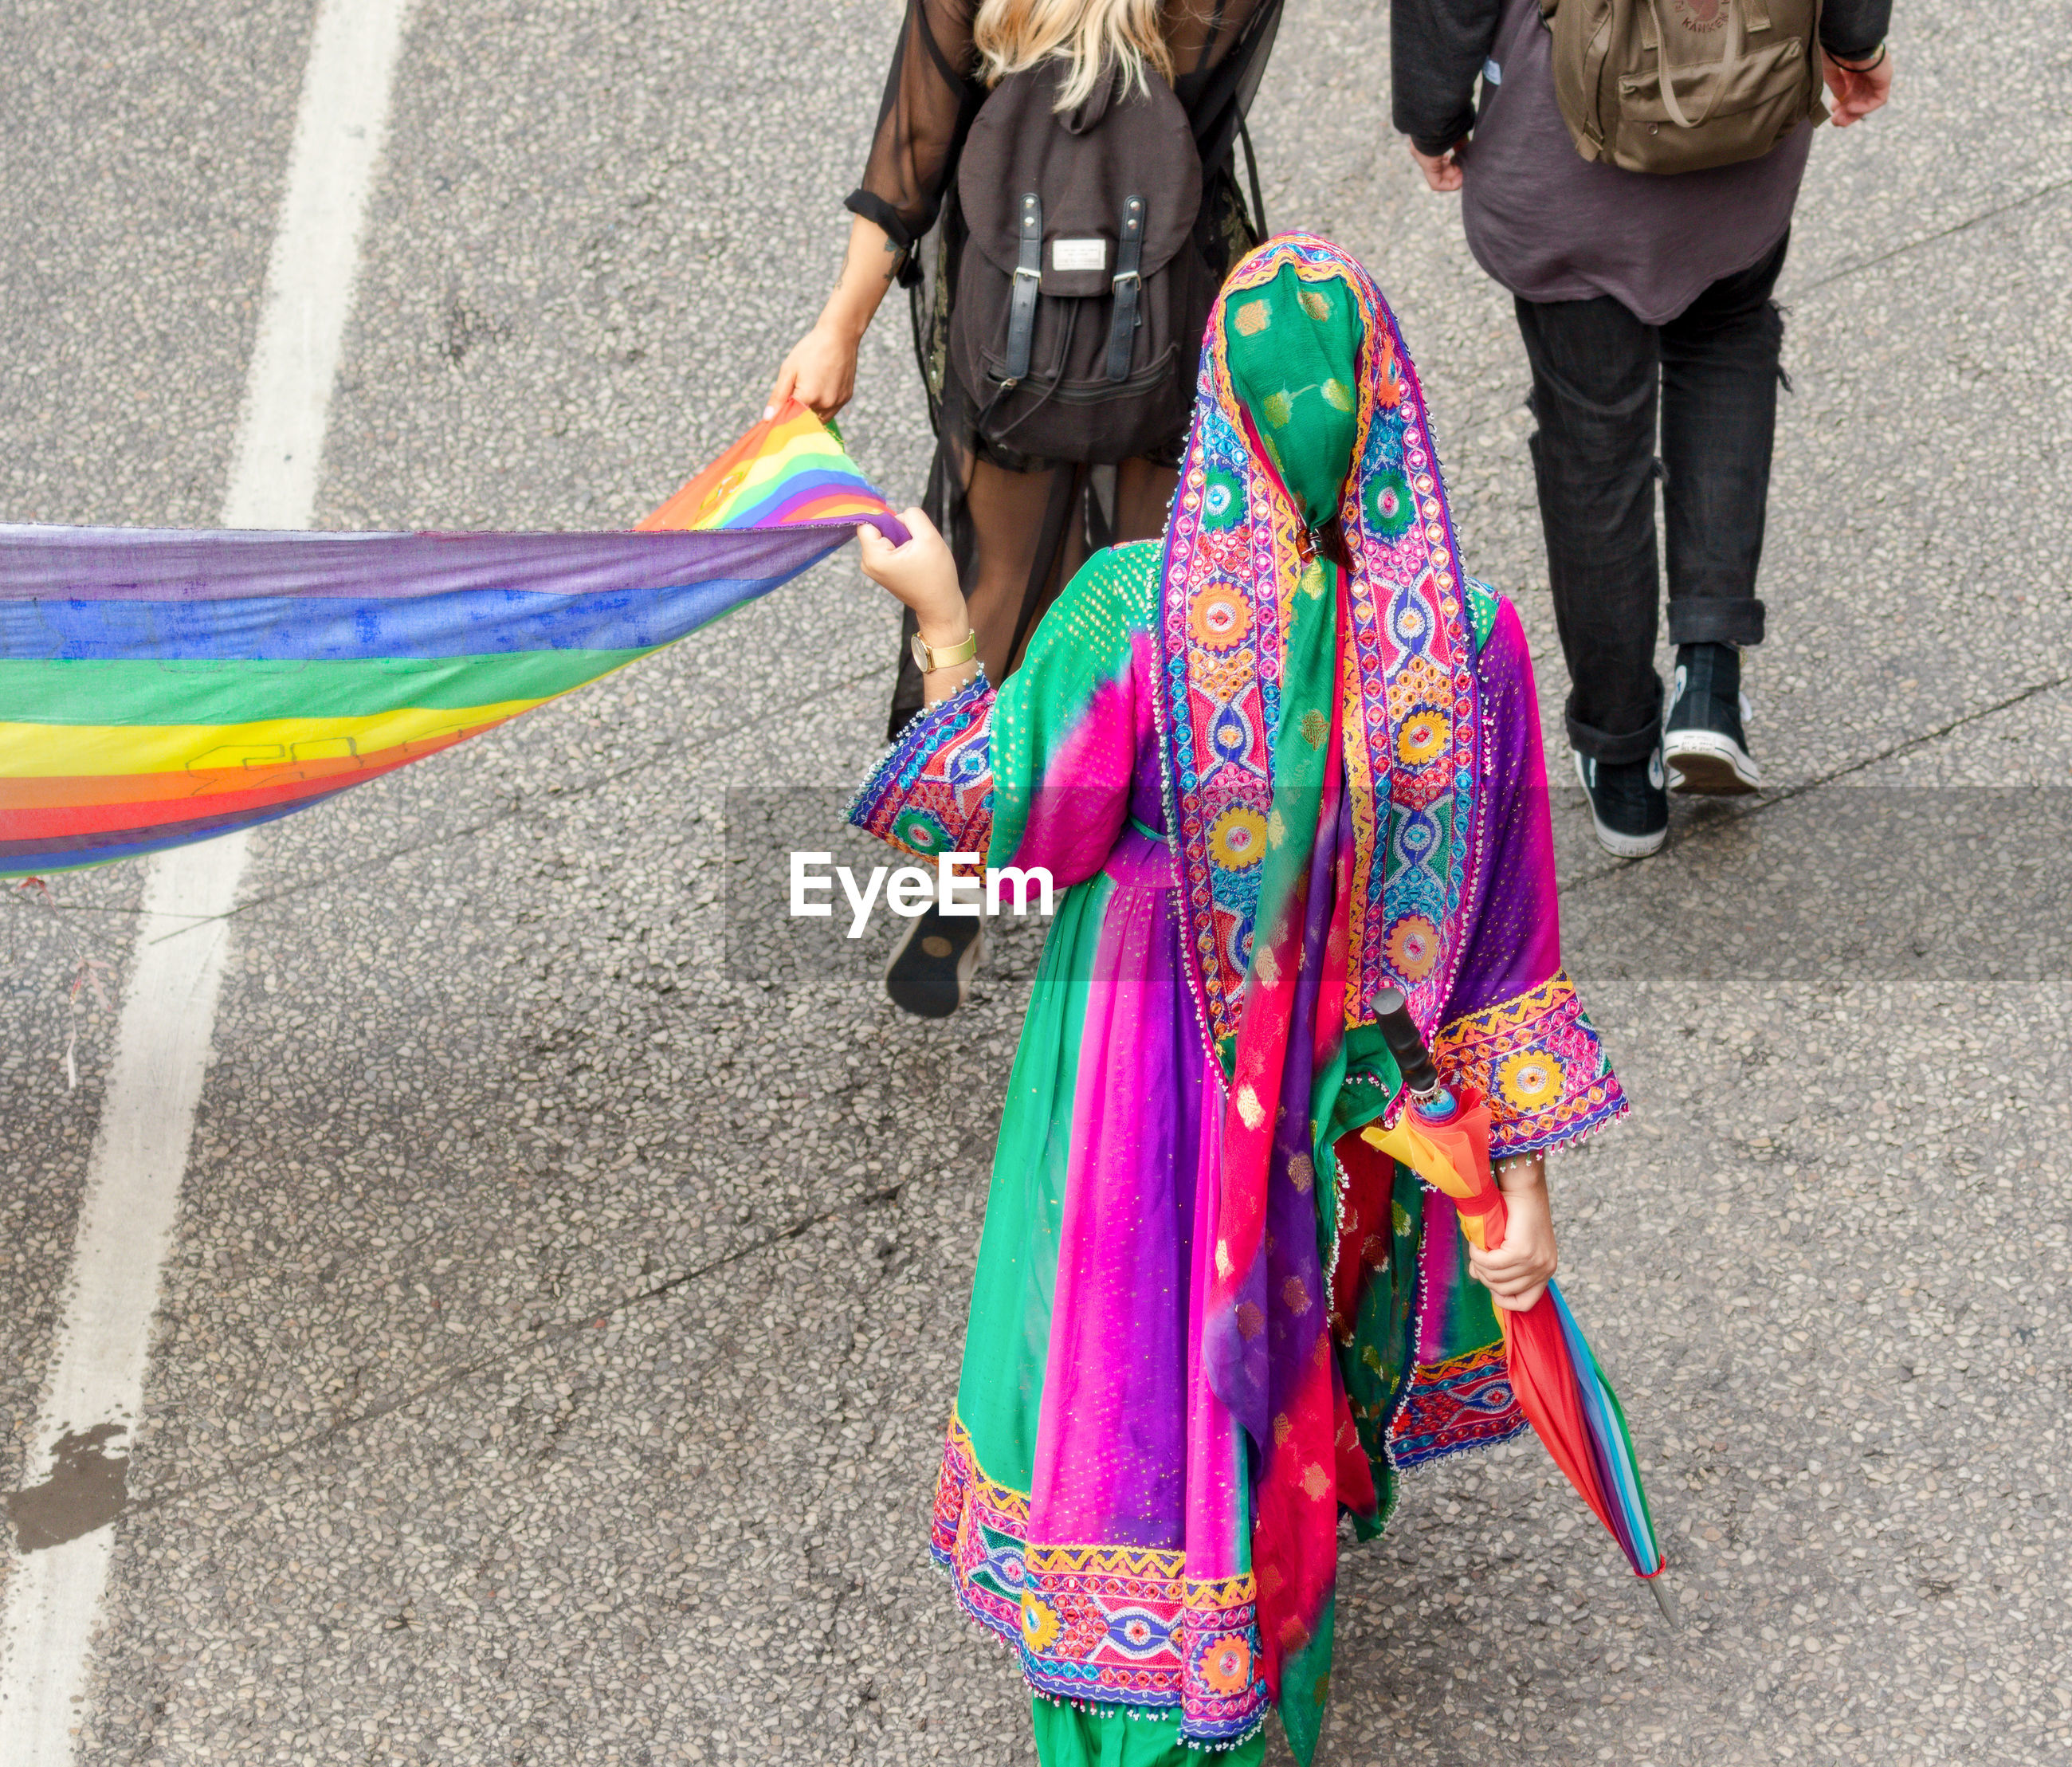 High angle view of women holding rainbow flag while walking on footpath